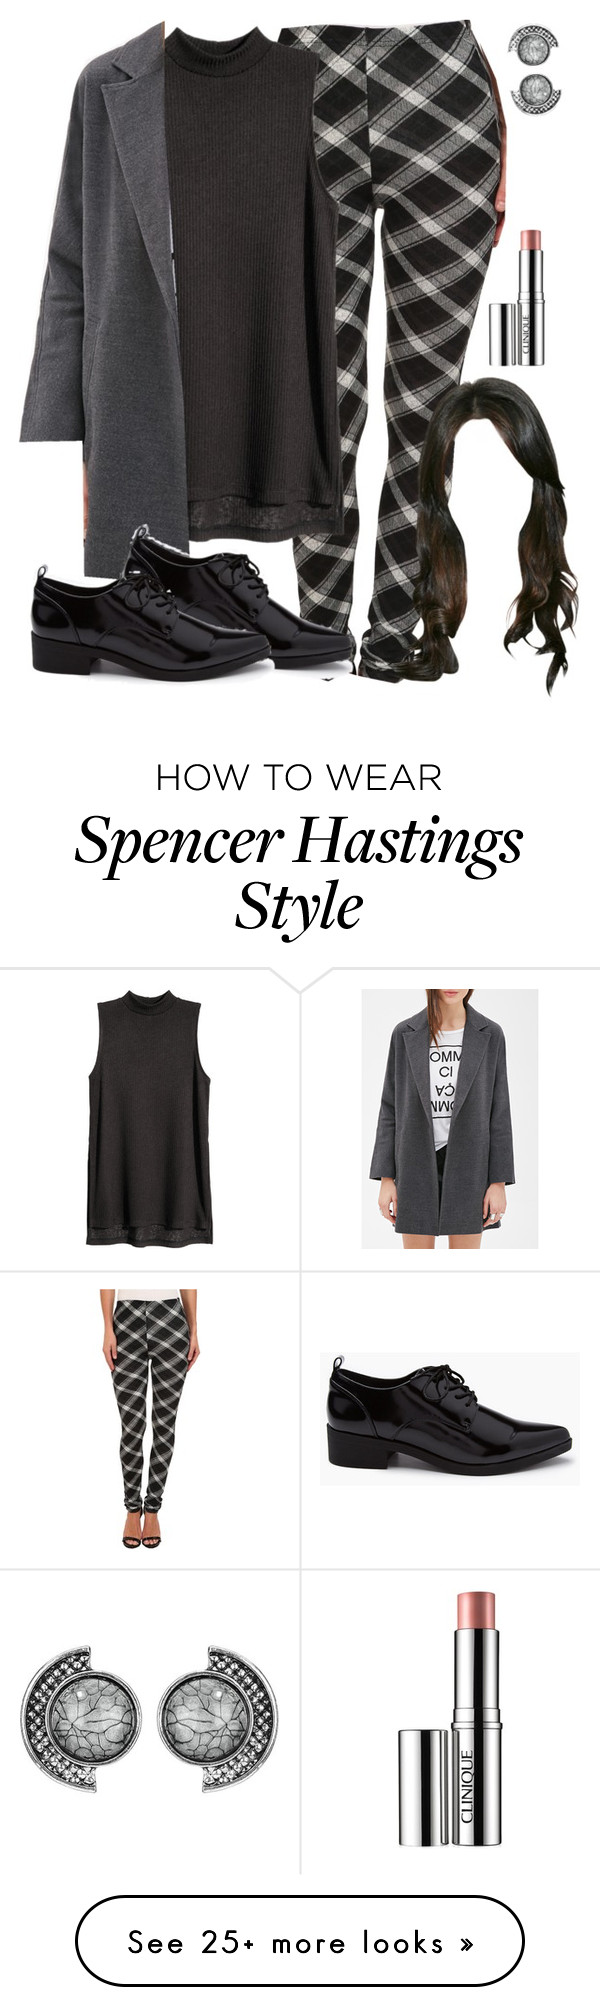 """Spencer Hastings soft grunge inspired outfit"" by liarsstyle on Polyvore featuri…"